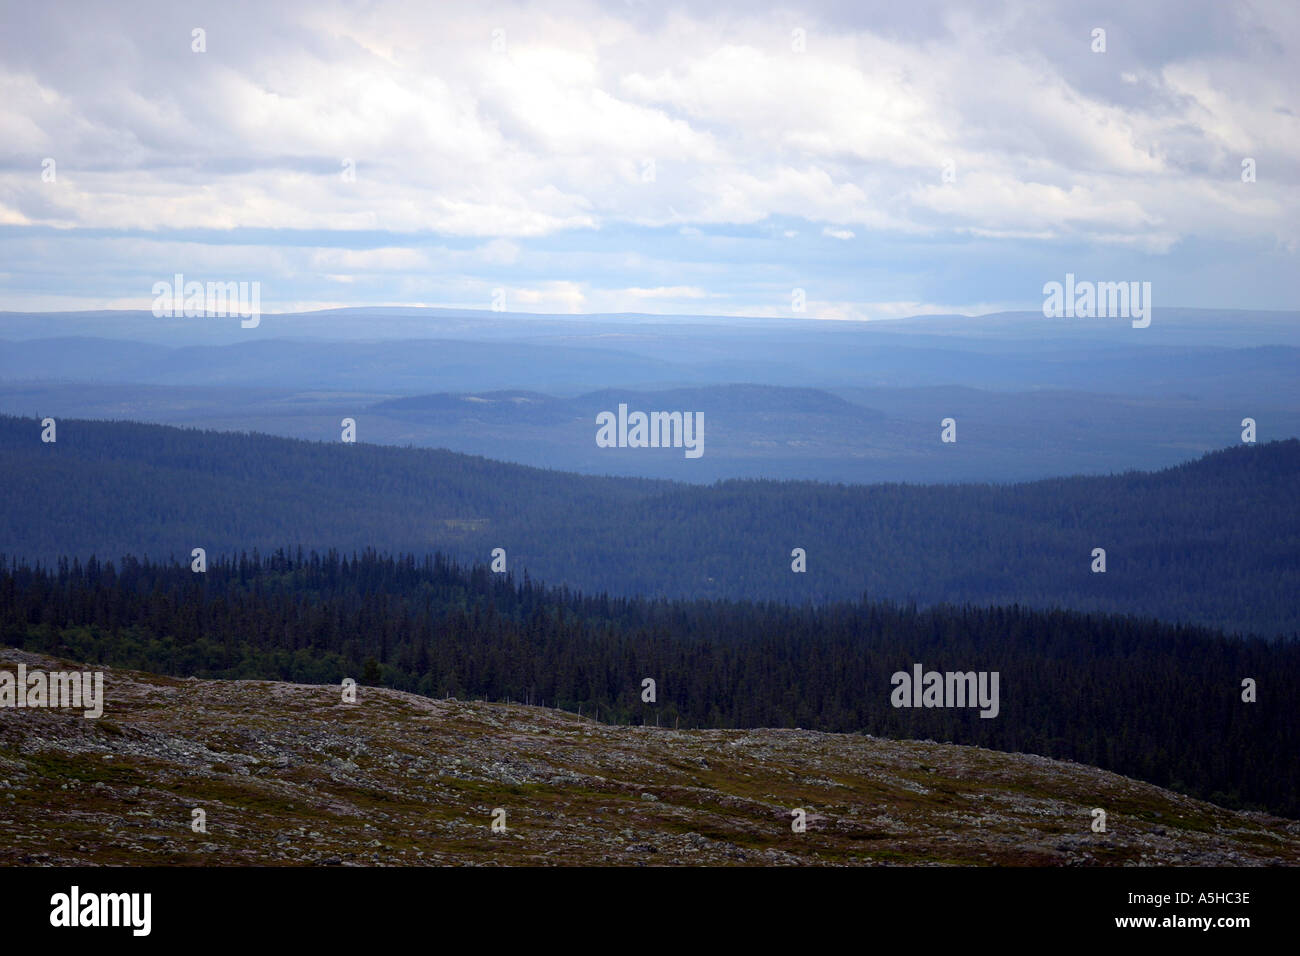 Mountains in Sweden - Stock Image